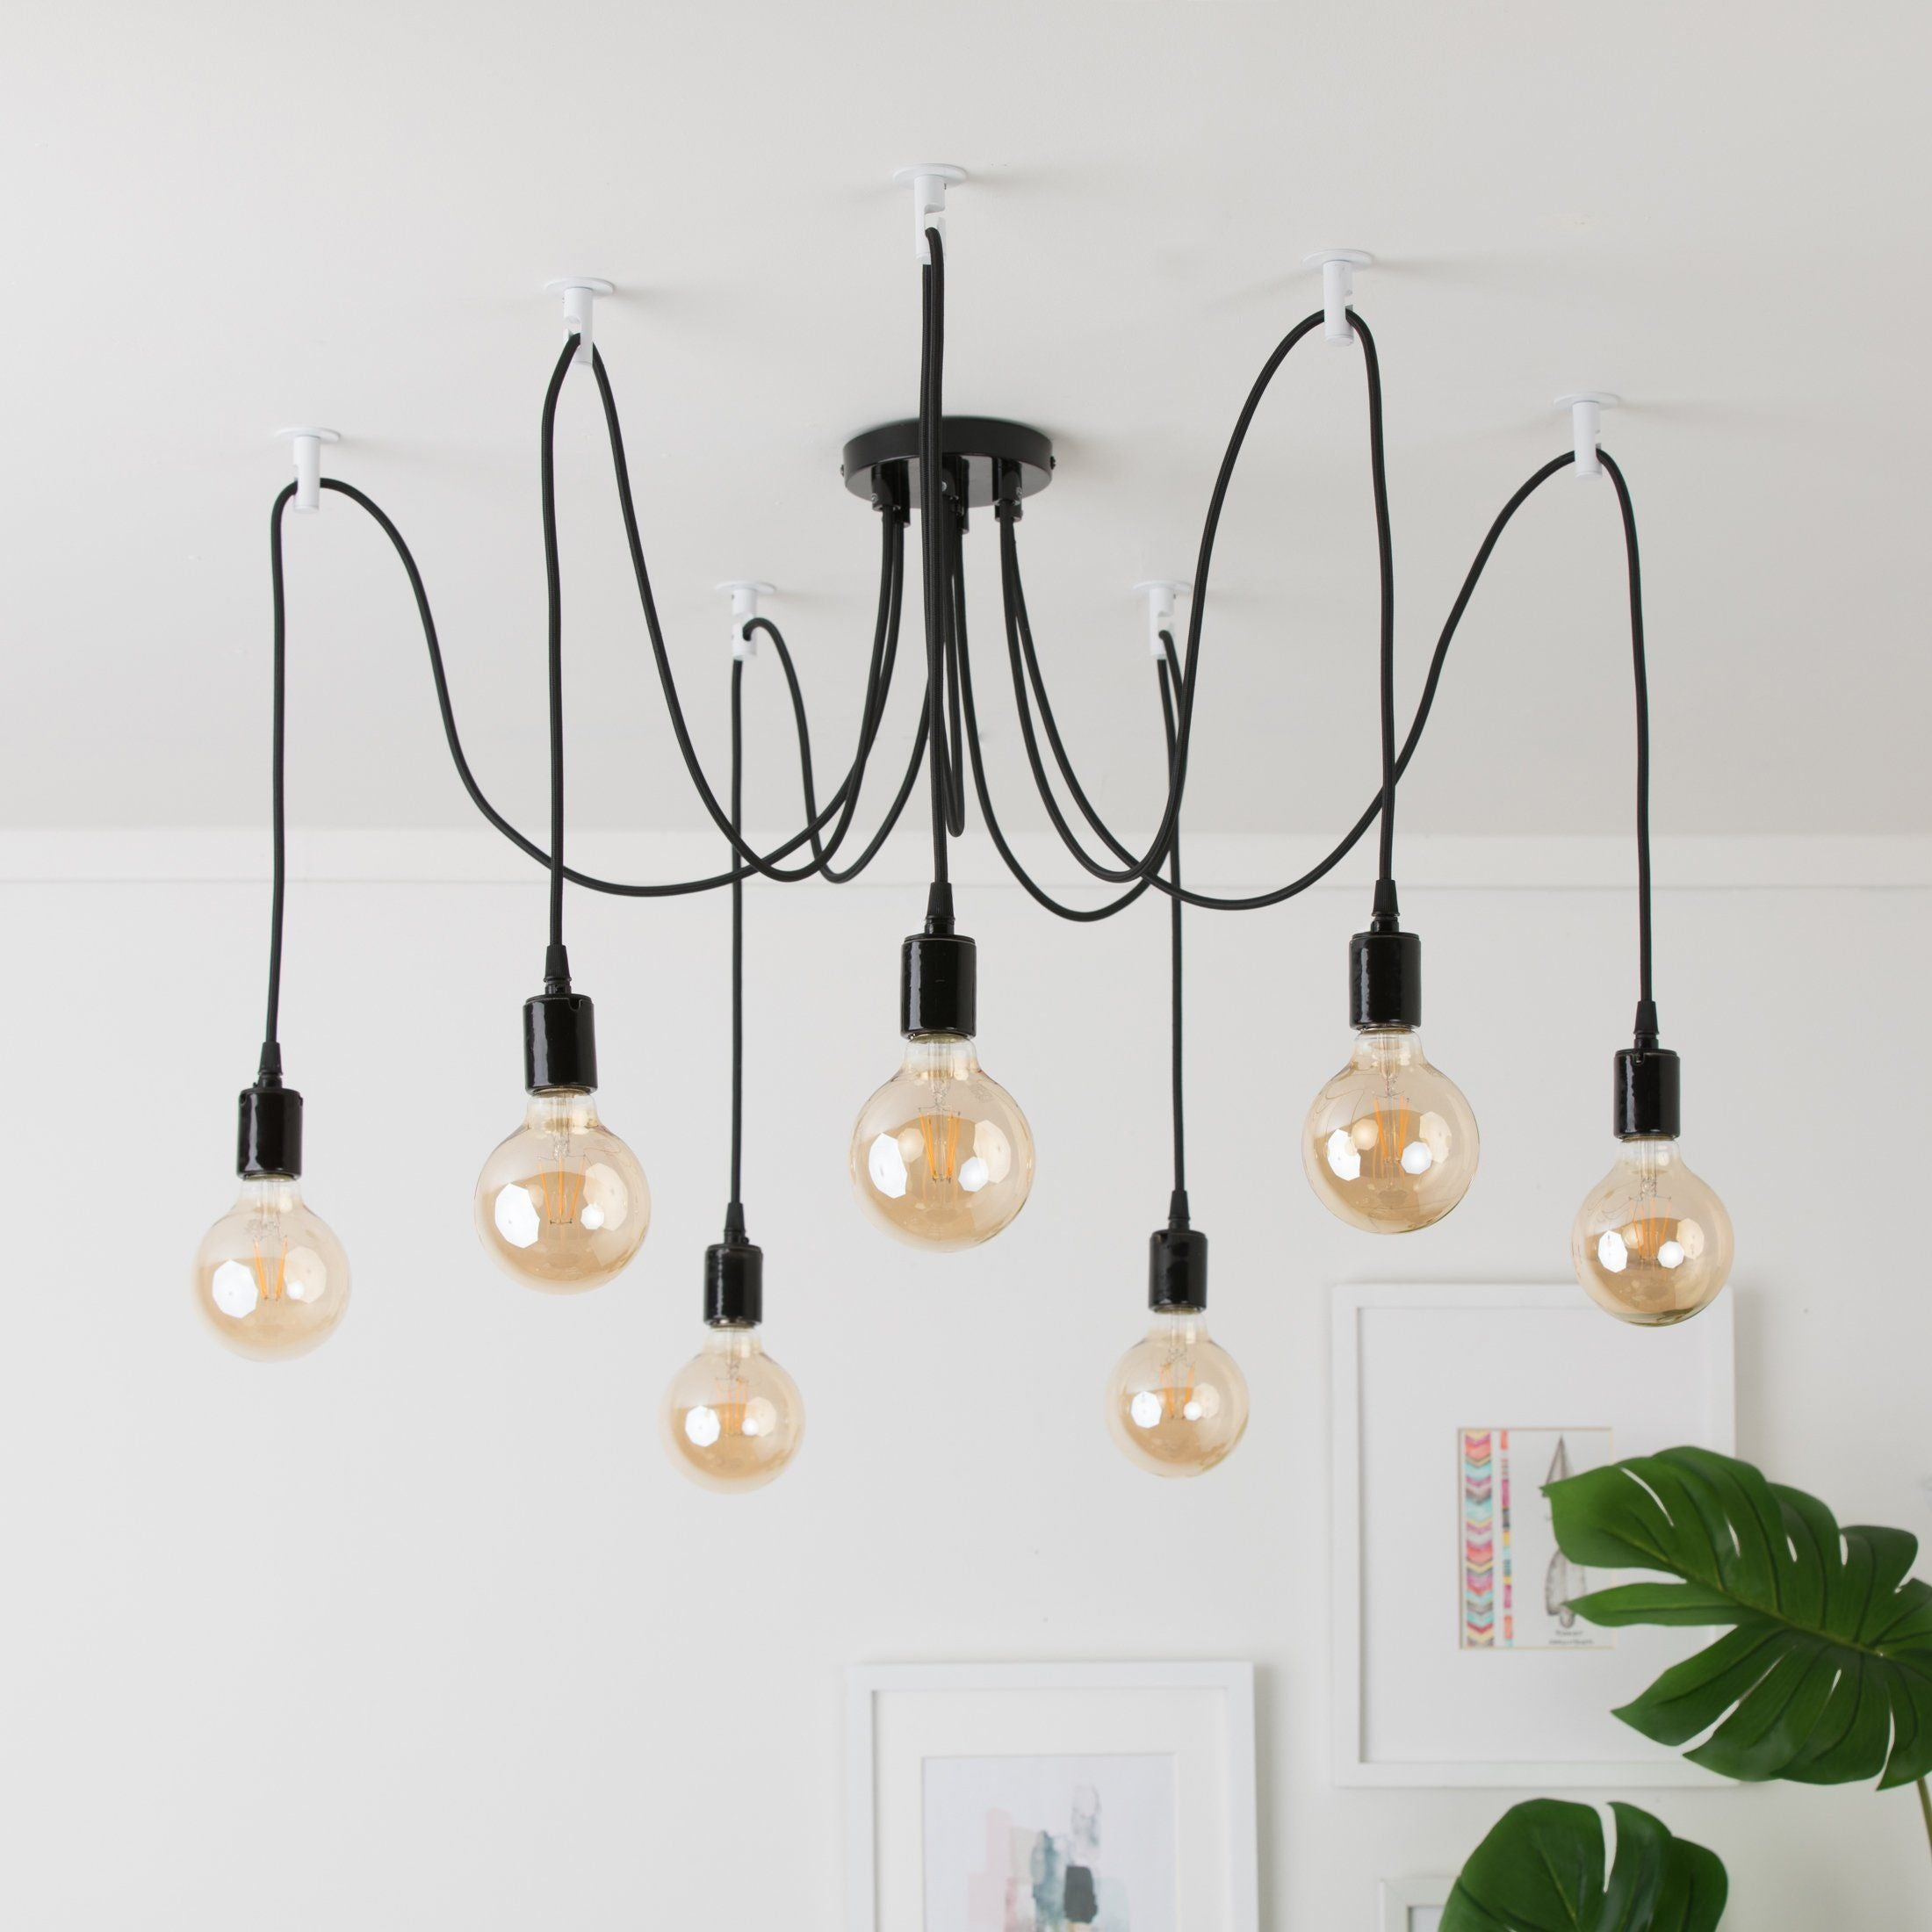 Swaging a light fixture lightneasy swaging a light fixture www lightneasy net arubaitofo Image collections